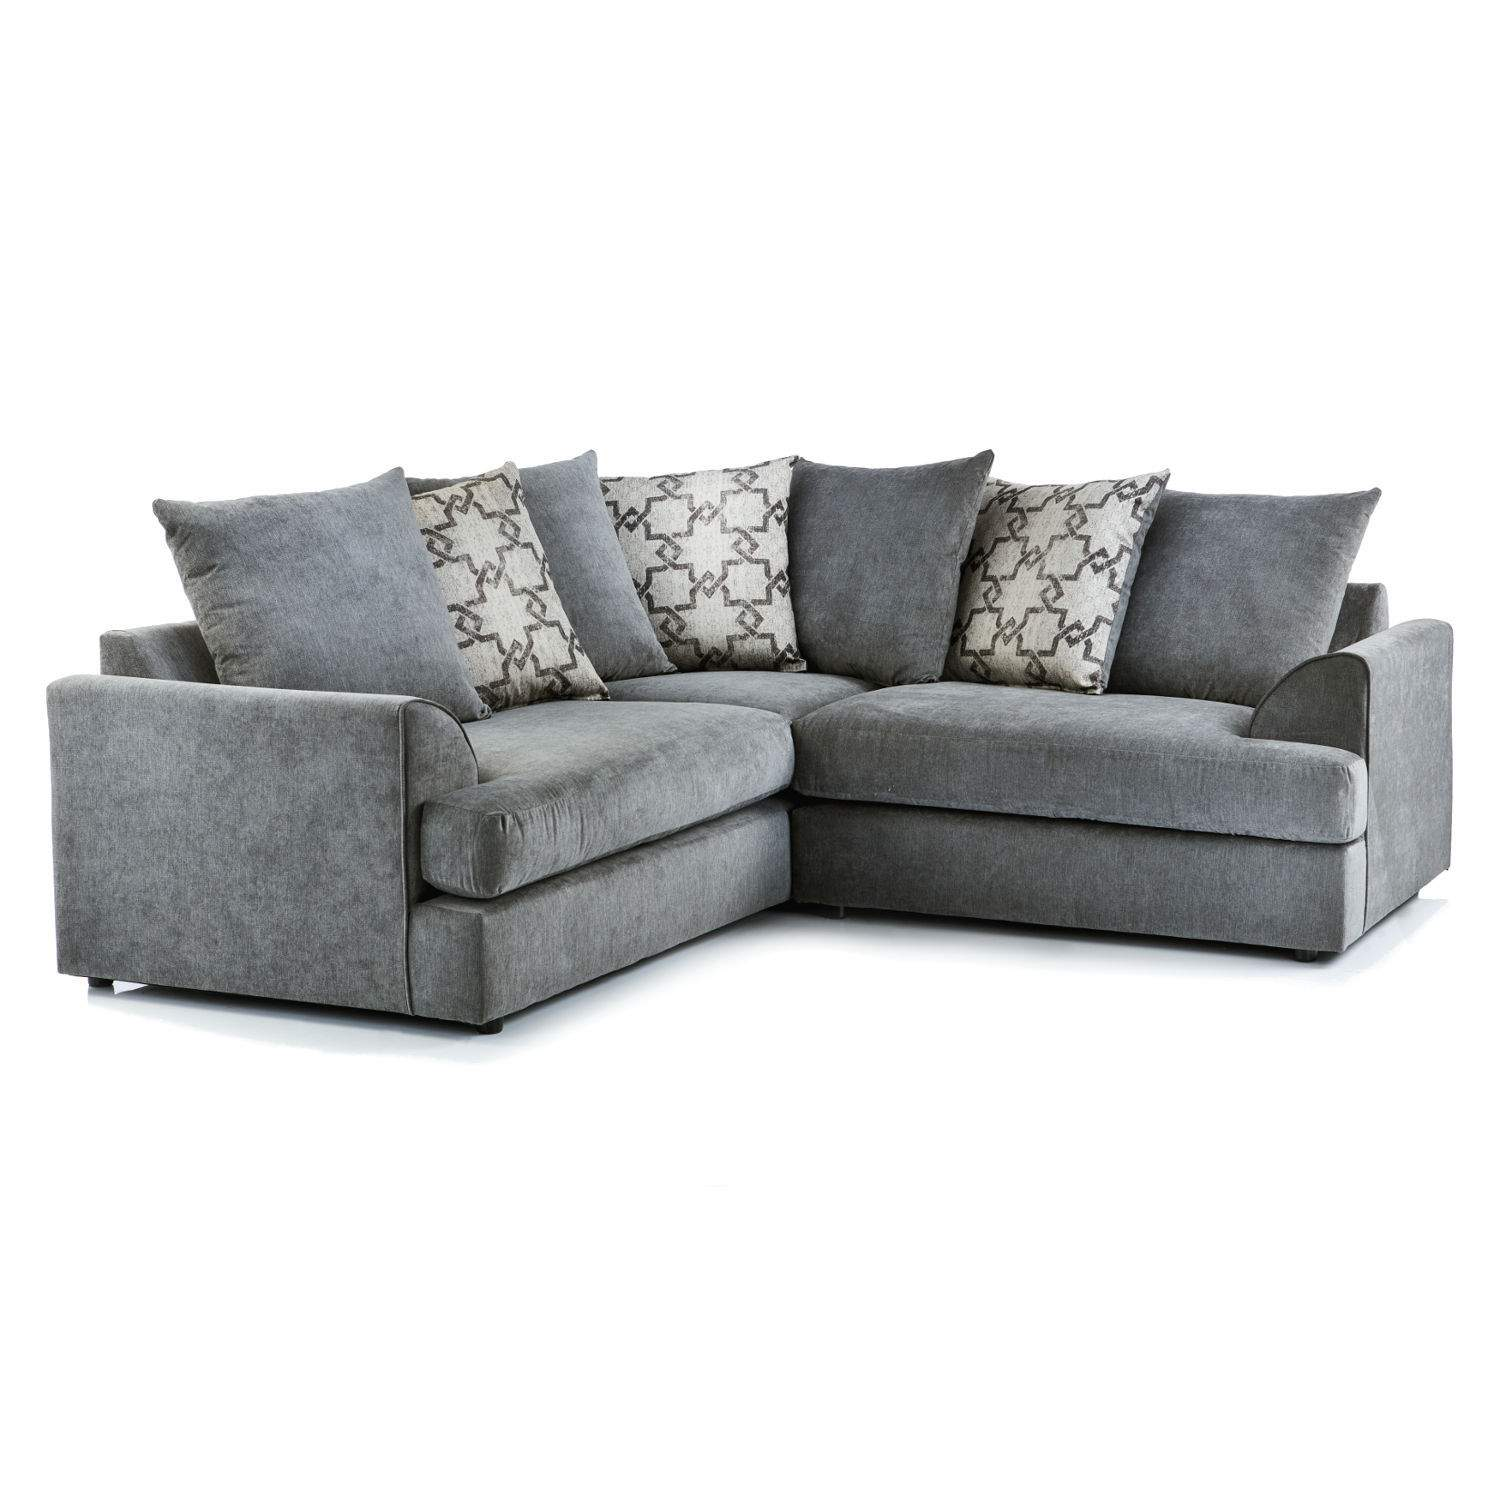 Washington Fabric Corner Sofa in Charcoal